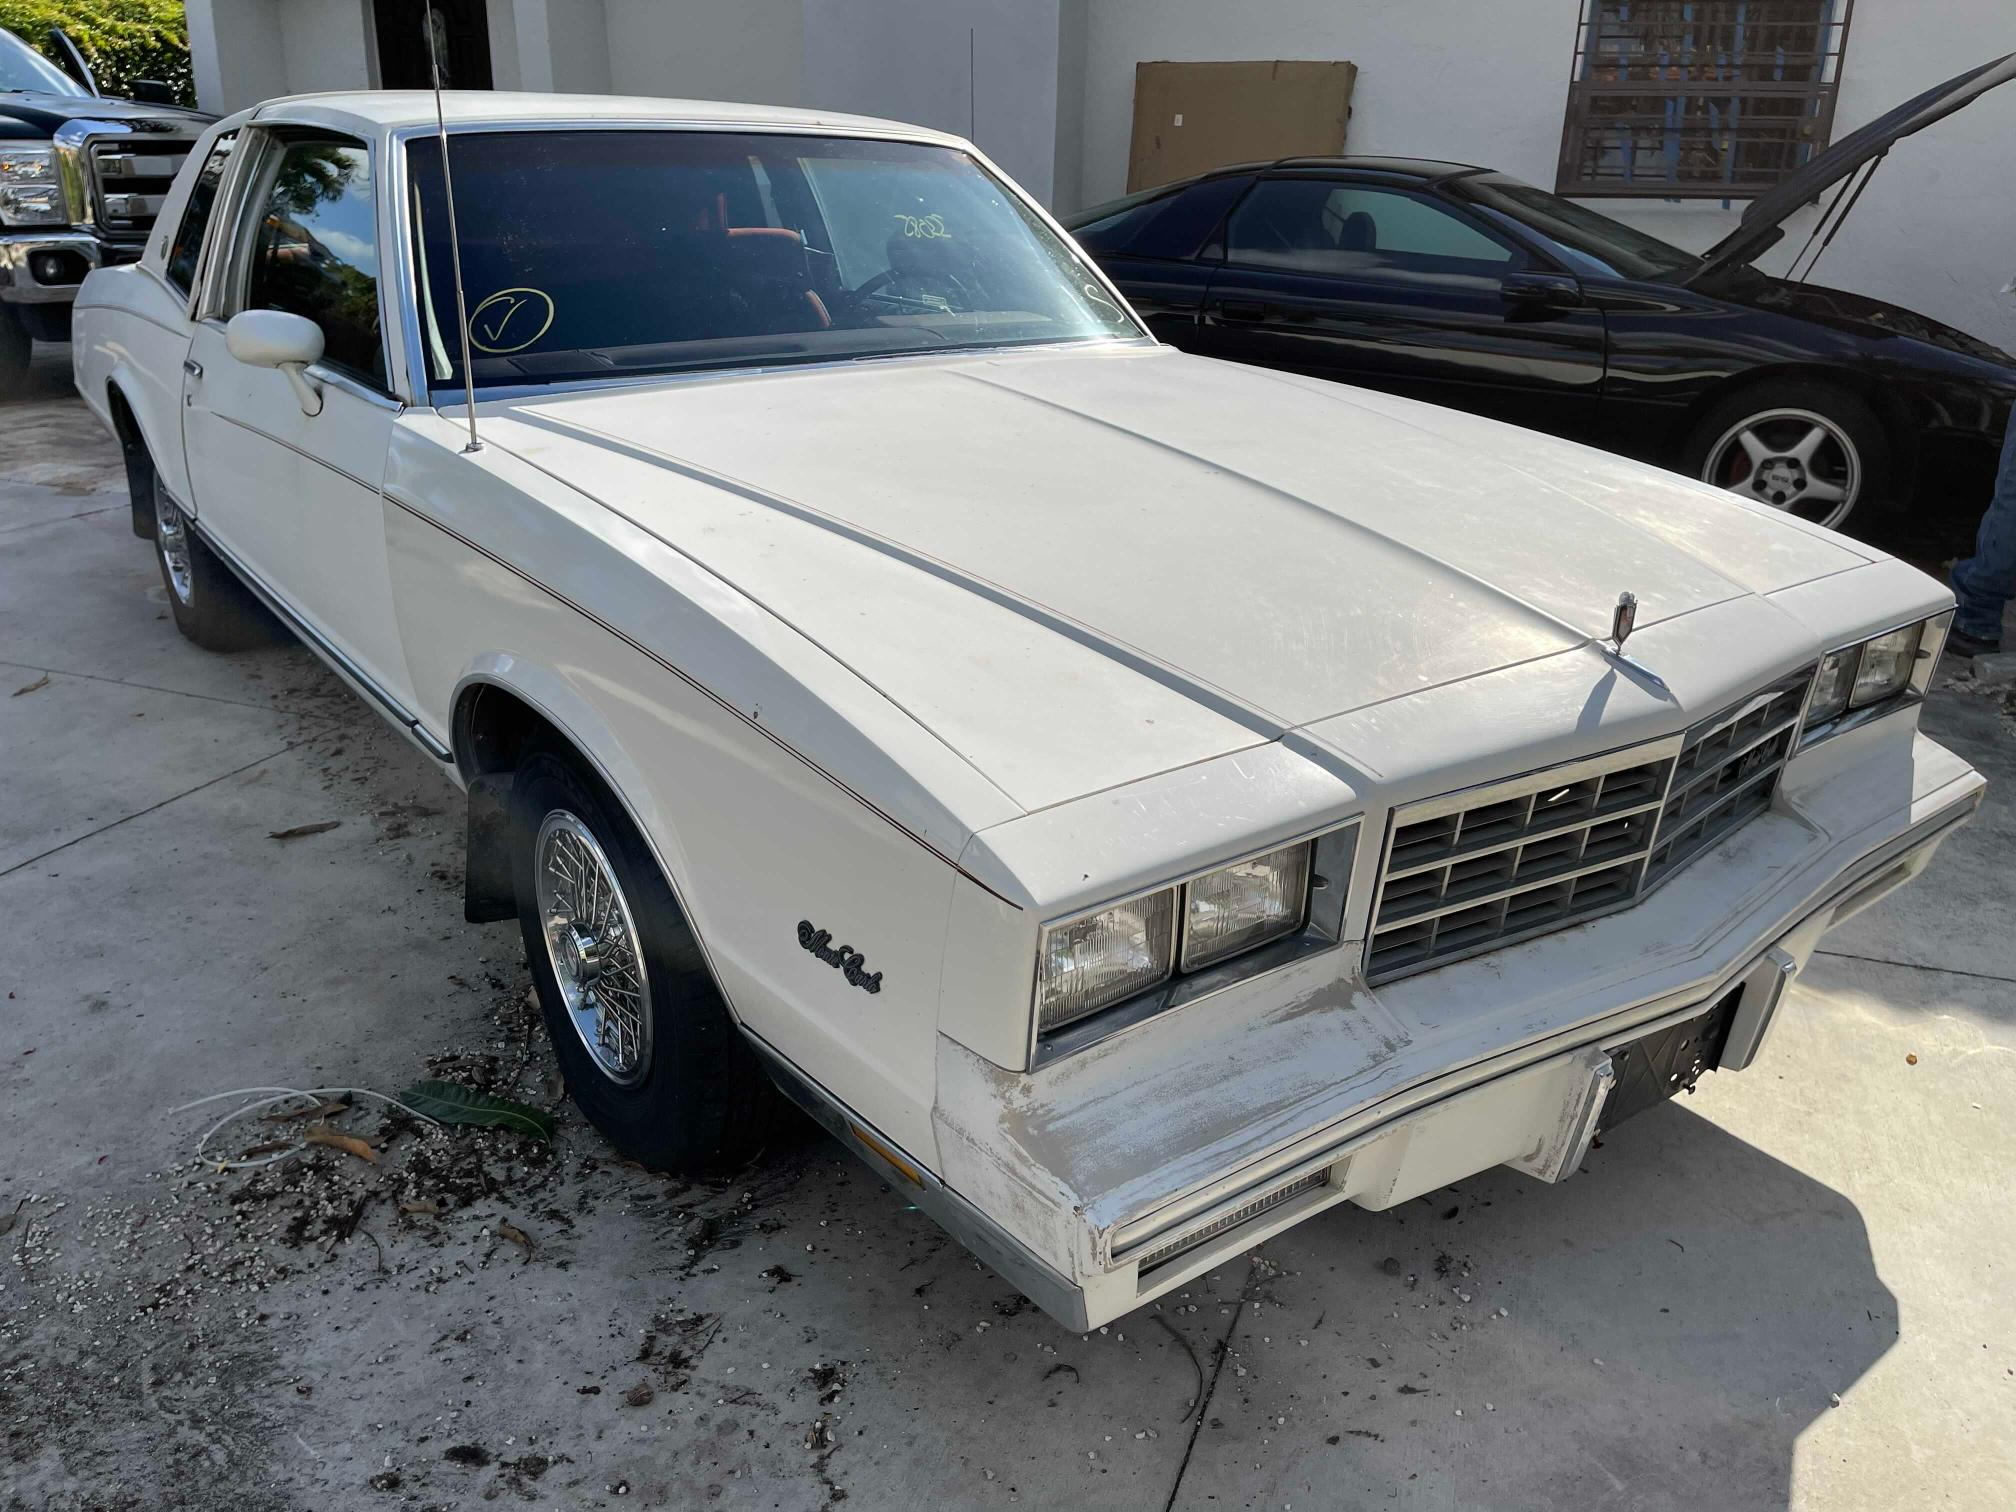 1984 Chevrolet Monte Carl for sale in Opa Locka, FL